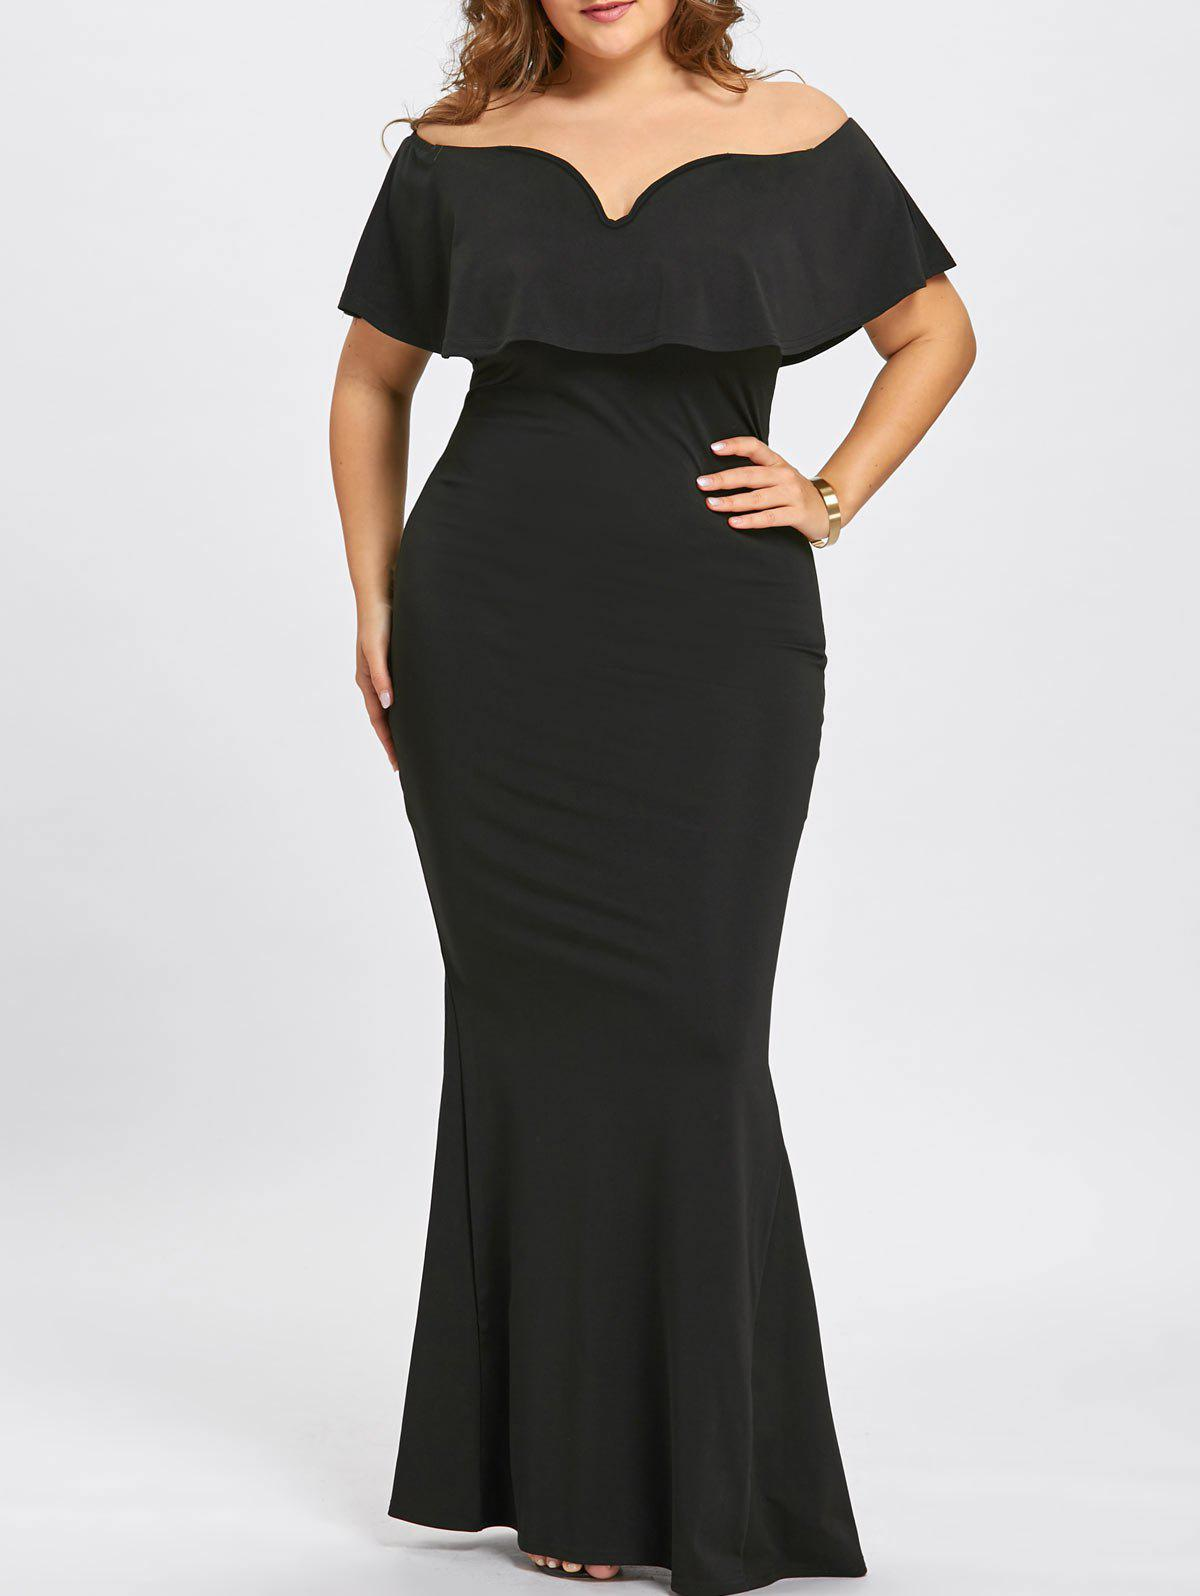 2018 Plus Size OFF The Shoulder Maxi Mermaid Dress In Black 3xl ...